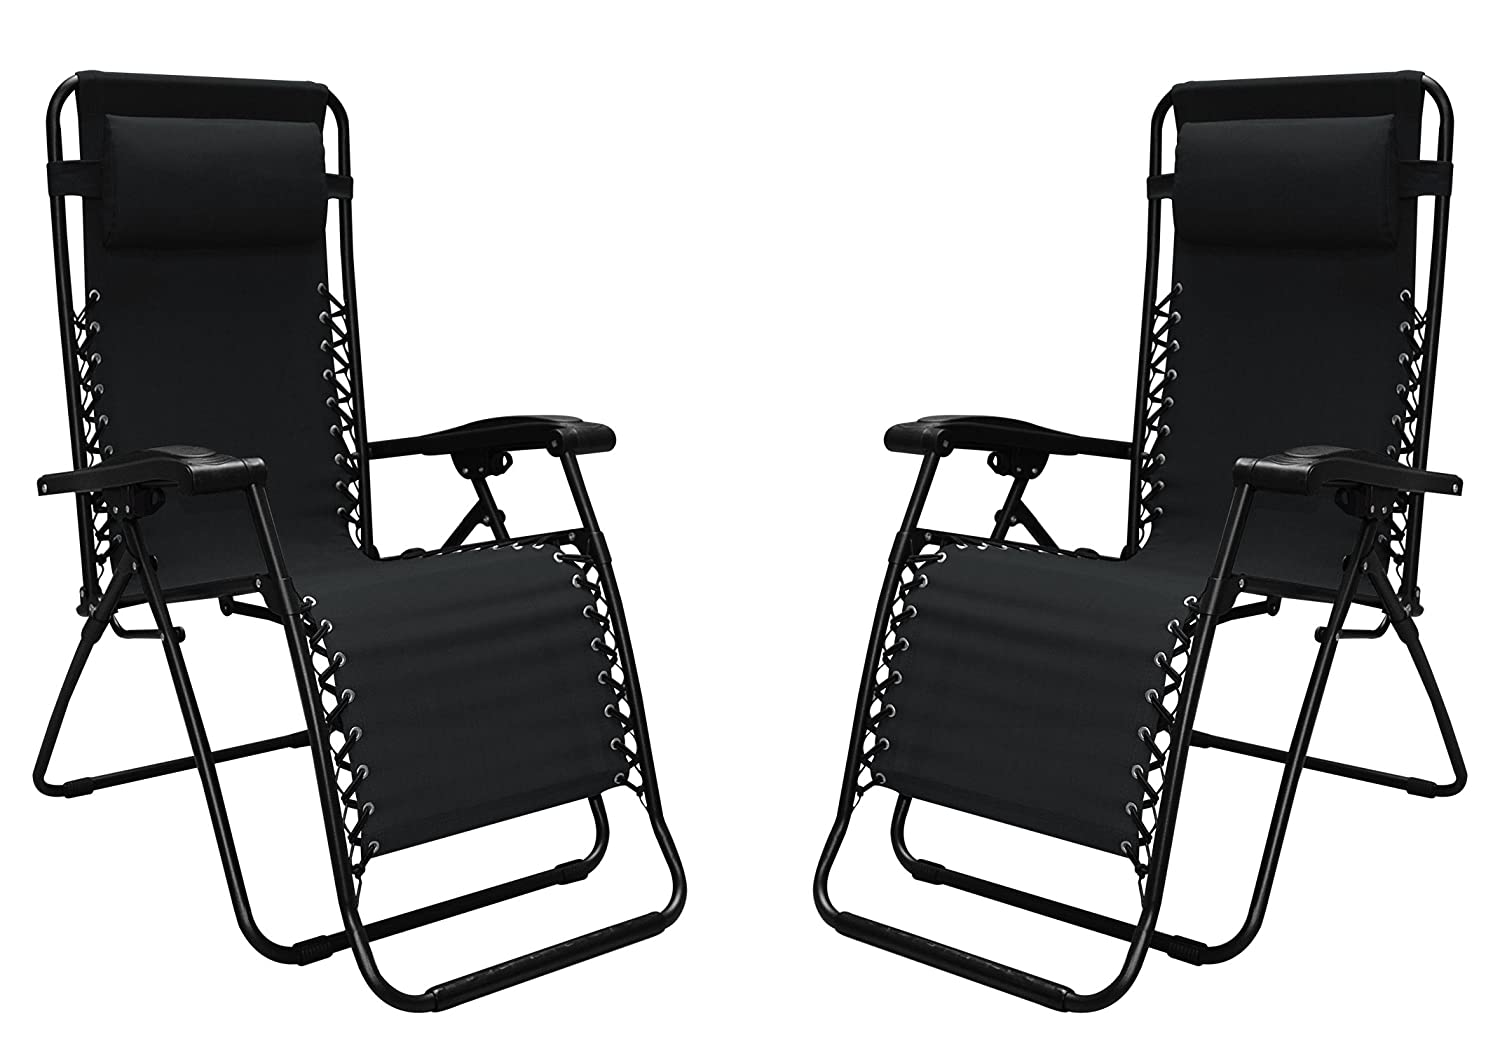 Caravan Canopy 80009000052 Sports Infinity Zero Gravity Chair 2 Pack , Black